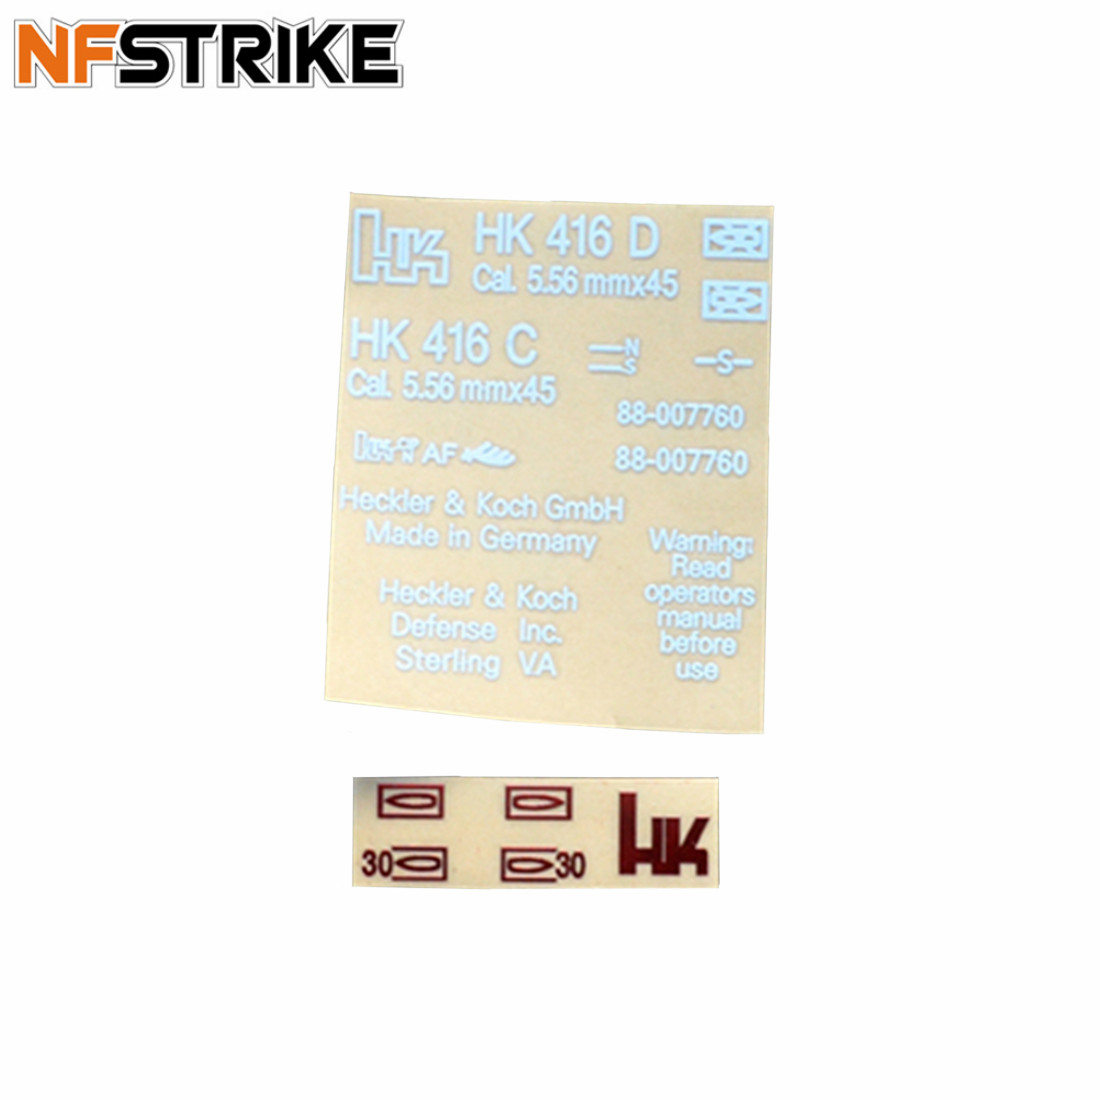 NFSTRIKE Receiver Sticker Metal Paster Decal For HK416 Receiver Water Gel Beads Blaster Tactical Accessories - White